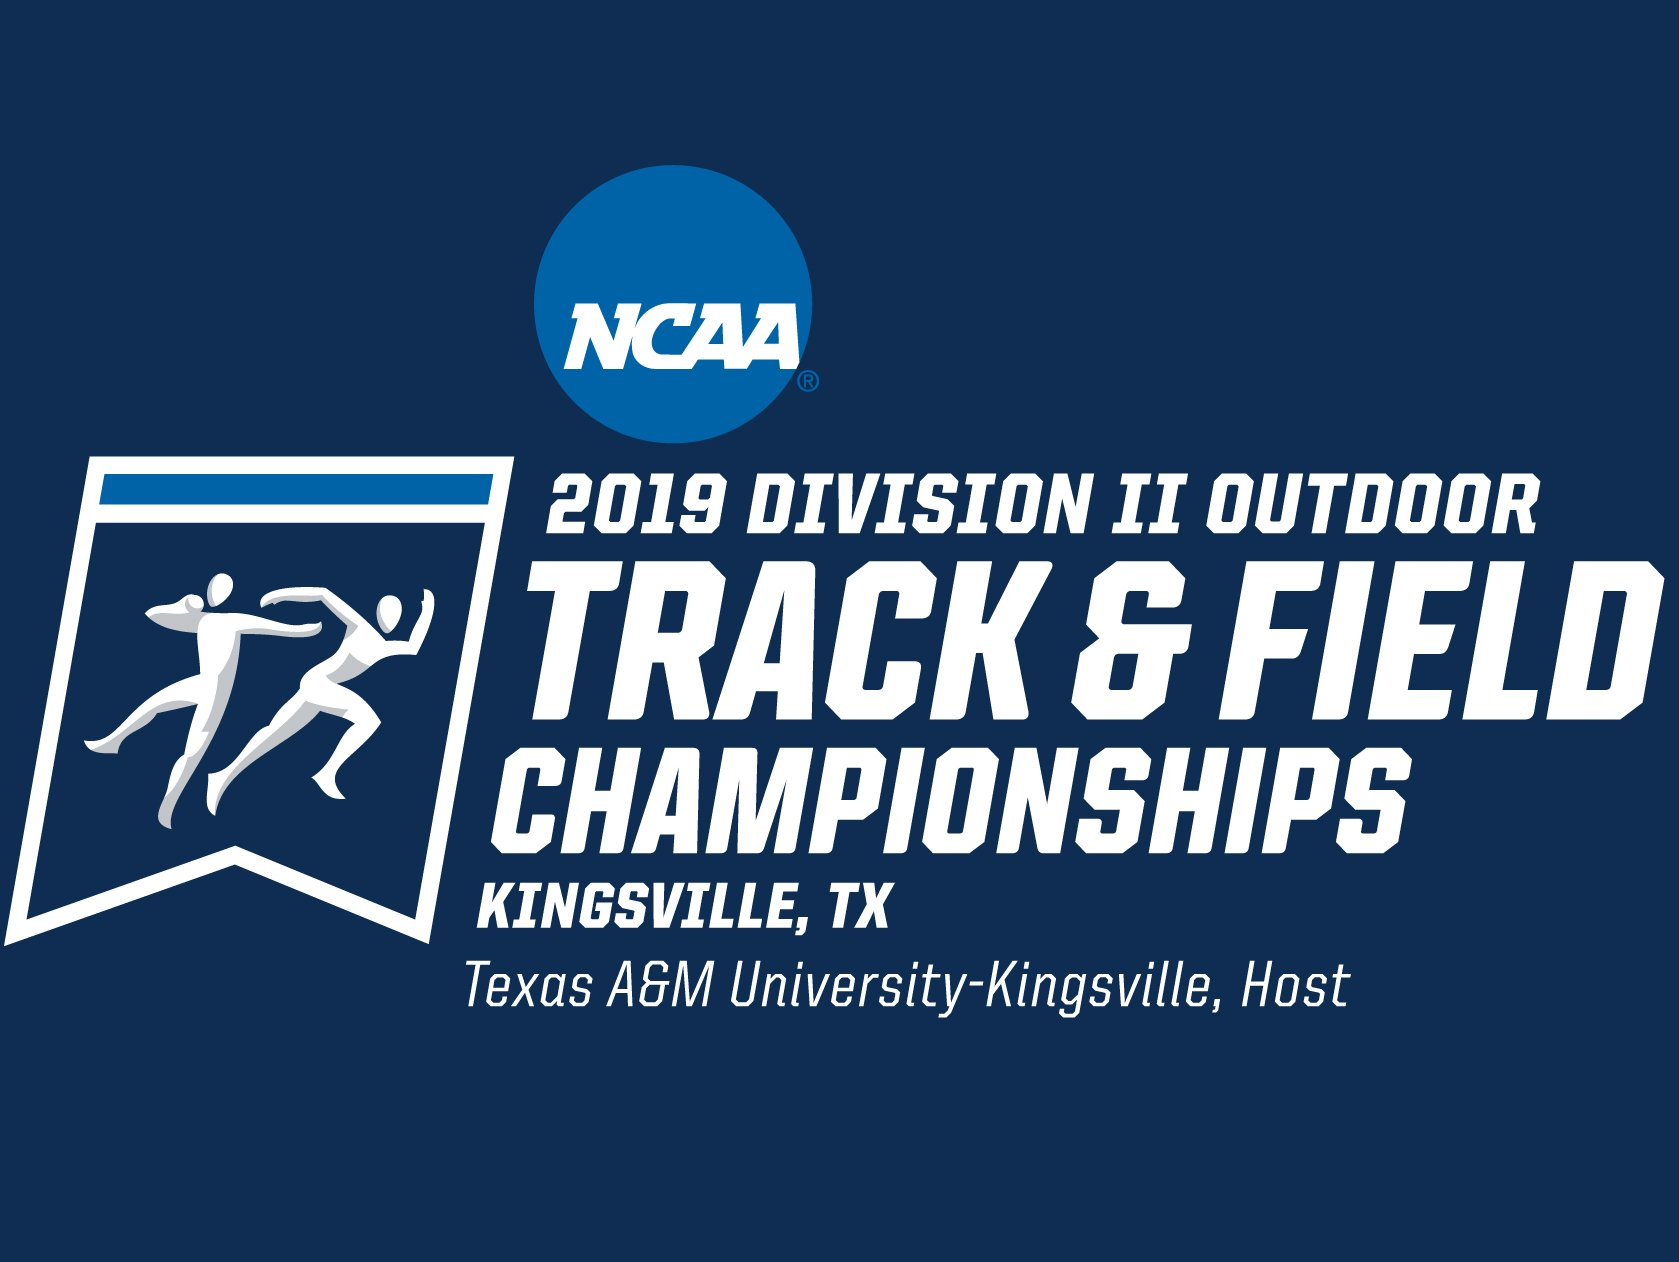 2019 NCAA Division II Outdoor Track and Filed championships